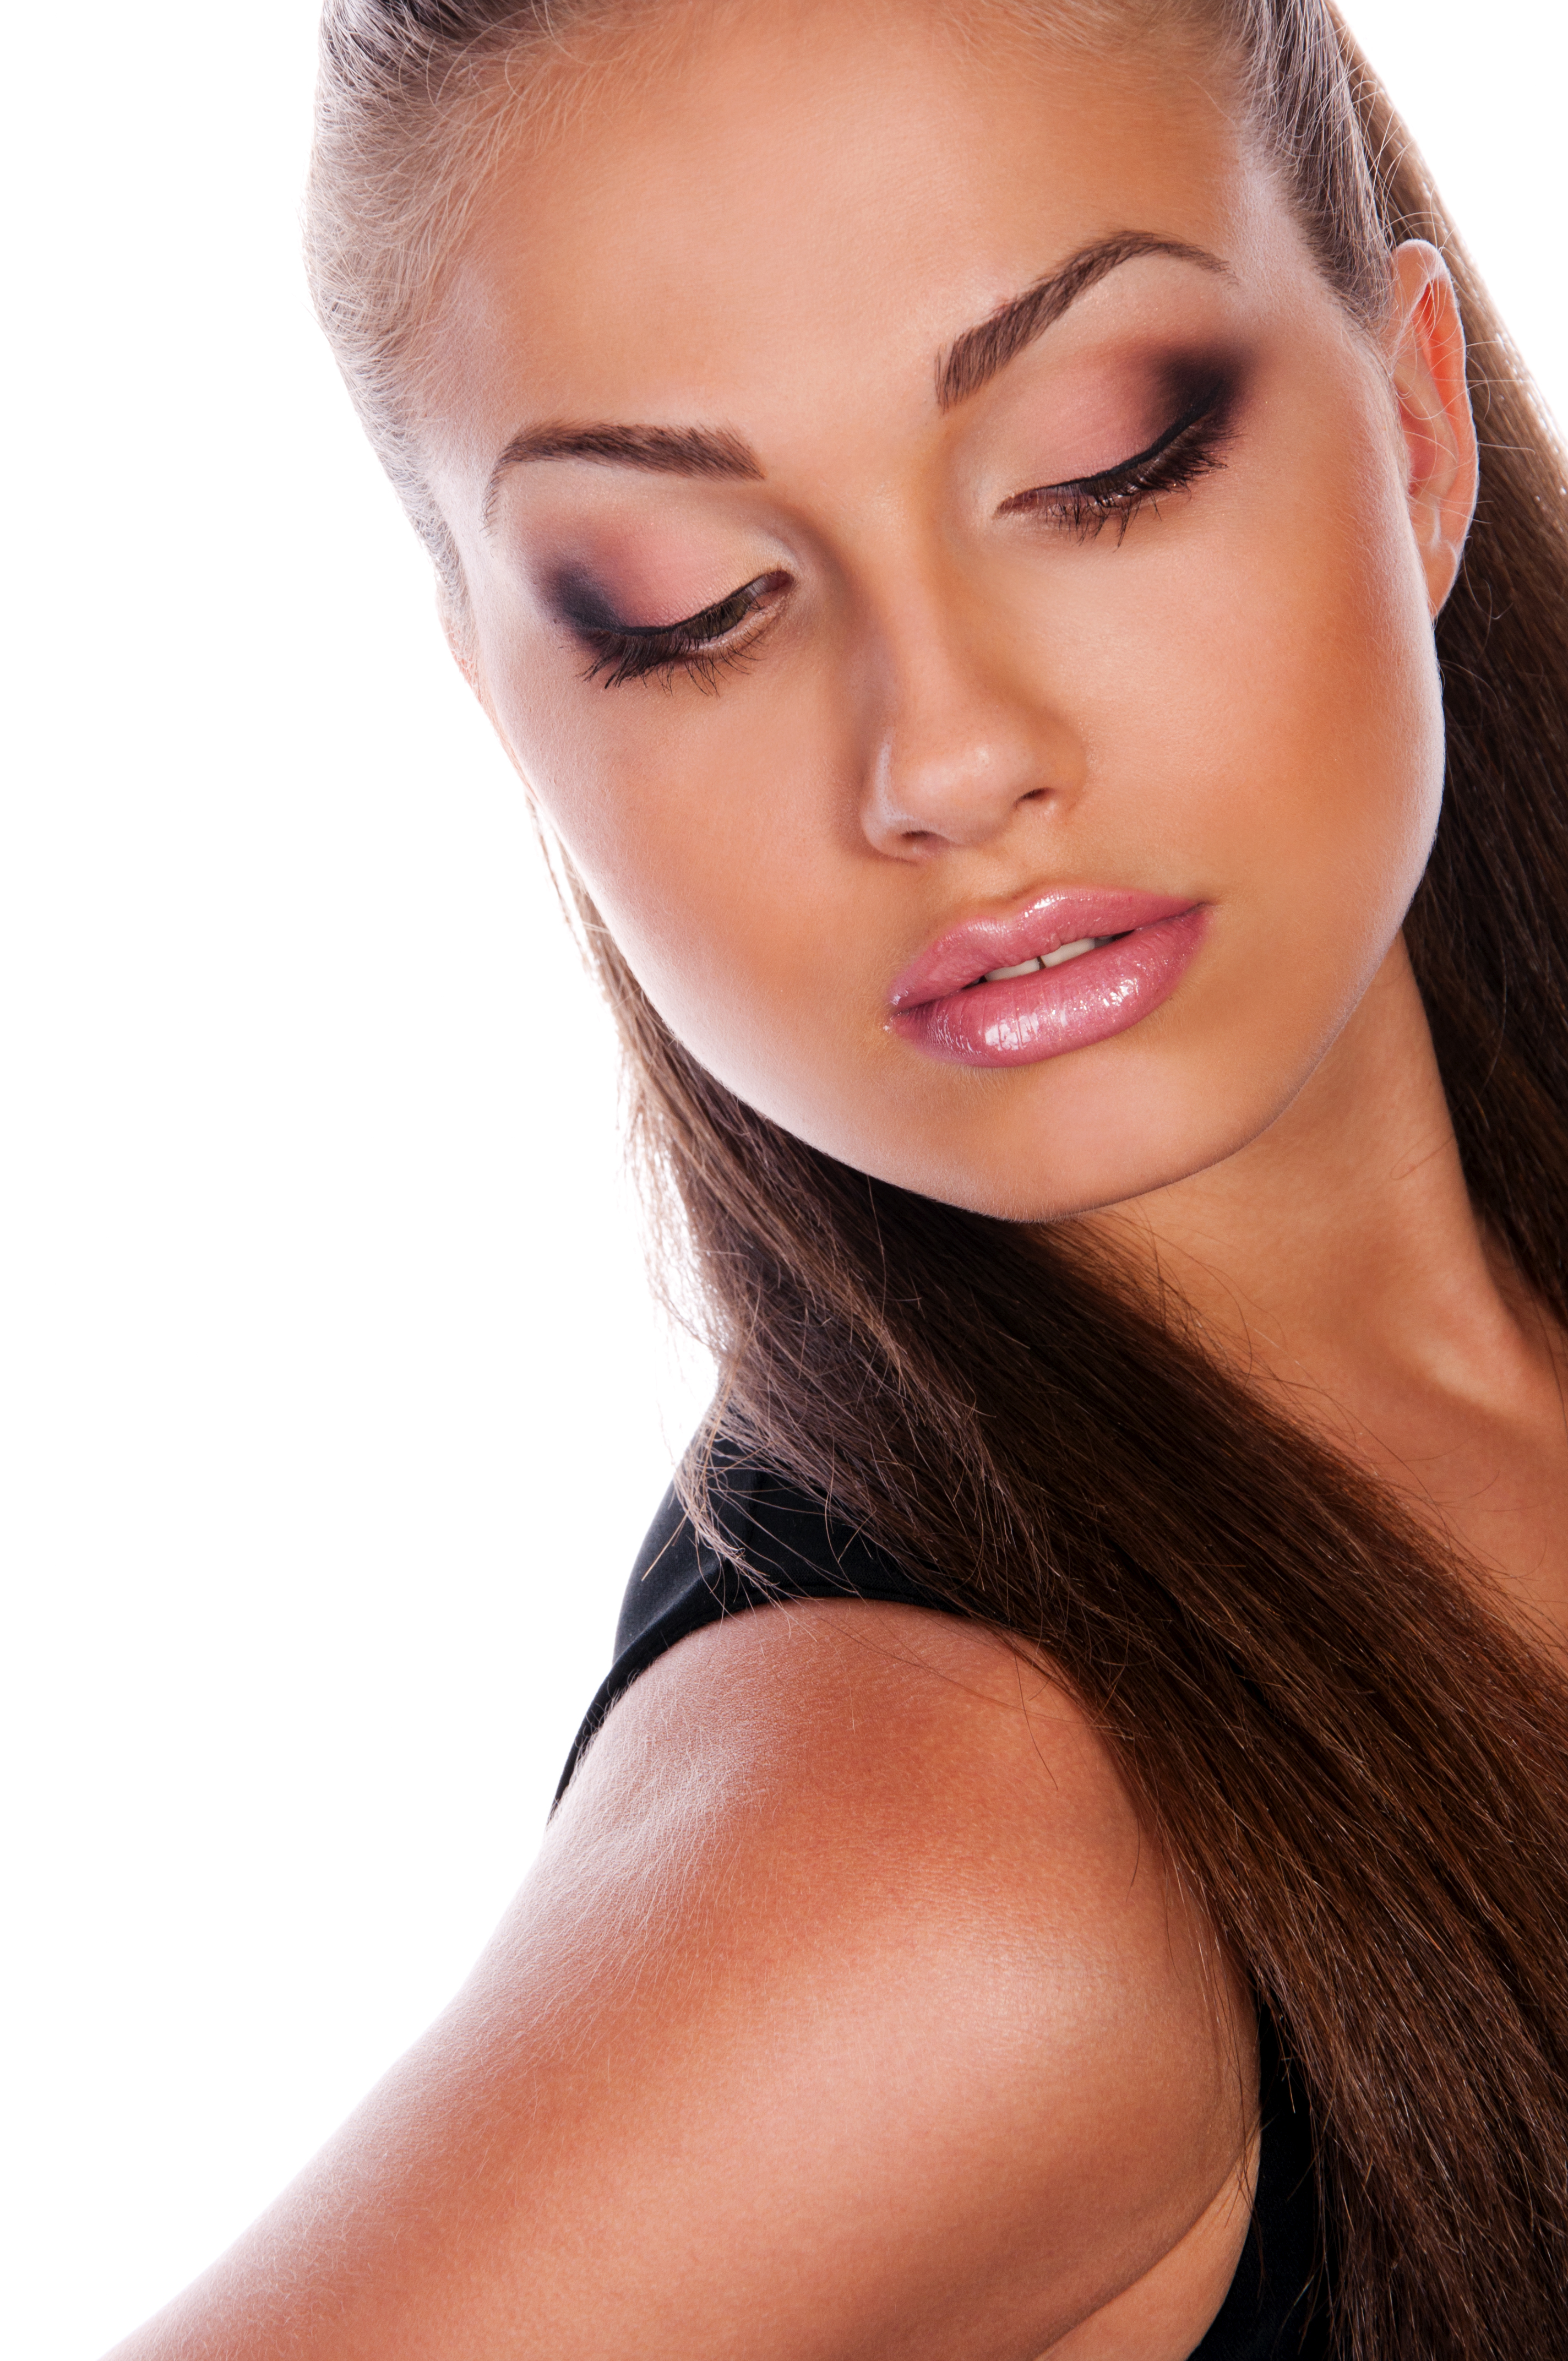 Breast Reconstruction Surgery Overview